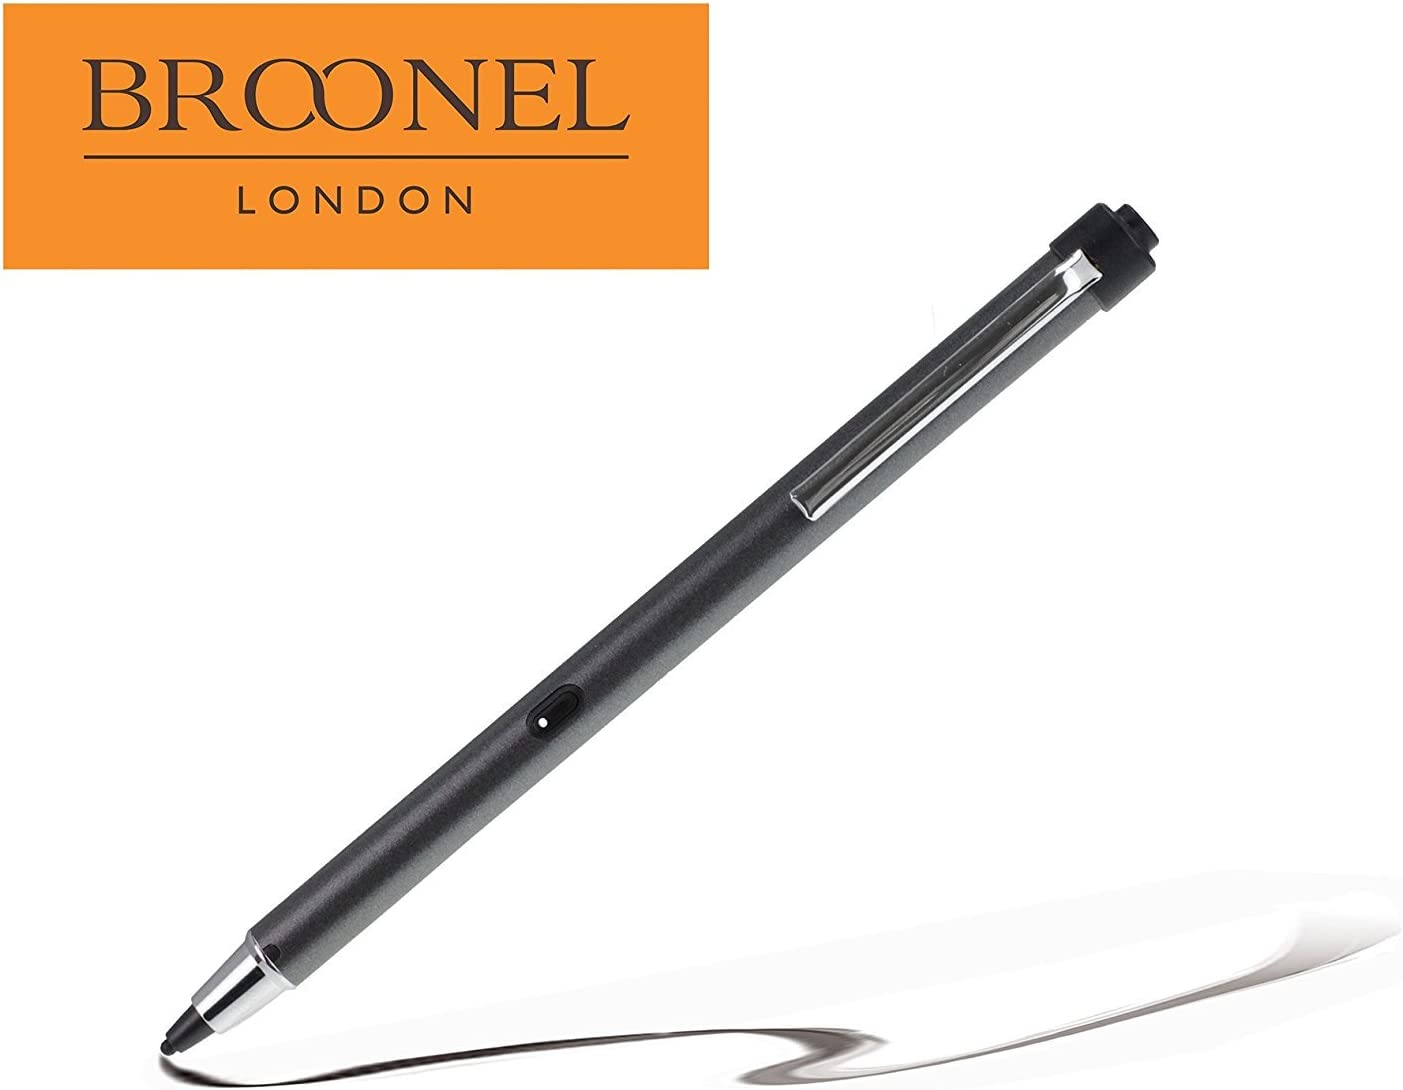 Broonel Metallic Grey Rechargeable Fine Point Digital Stylus Compatible with The/ Archo 80 Helium/ 4G